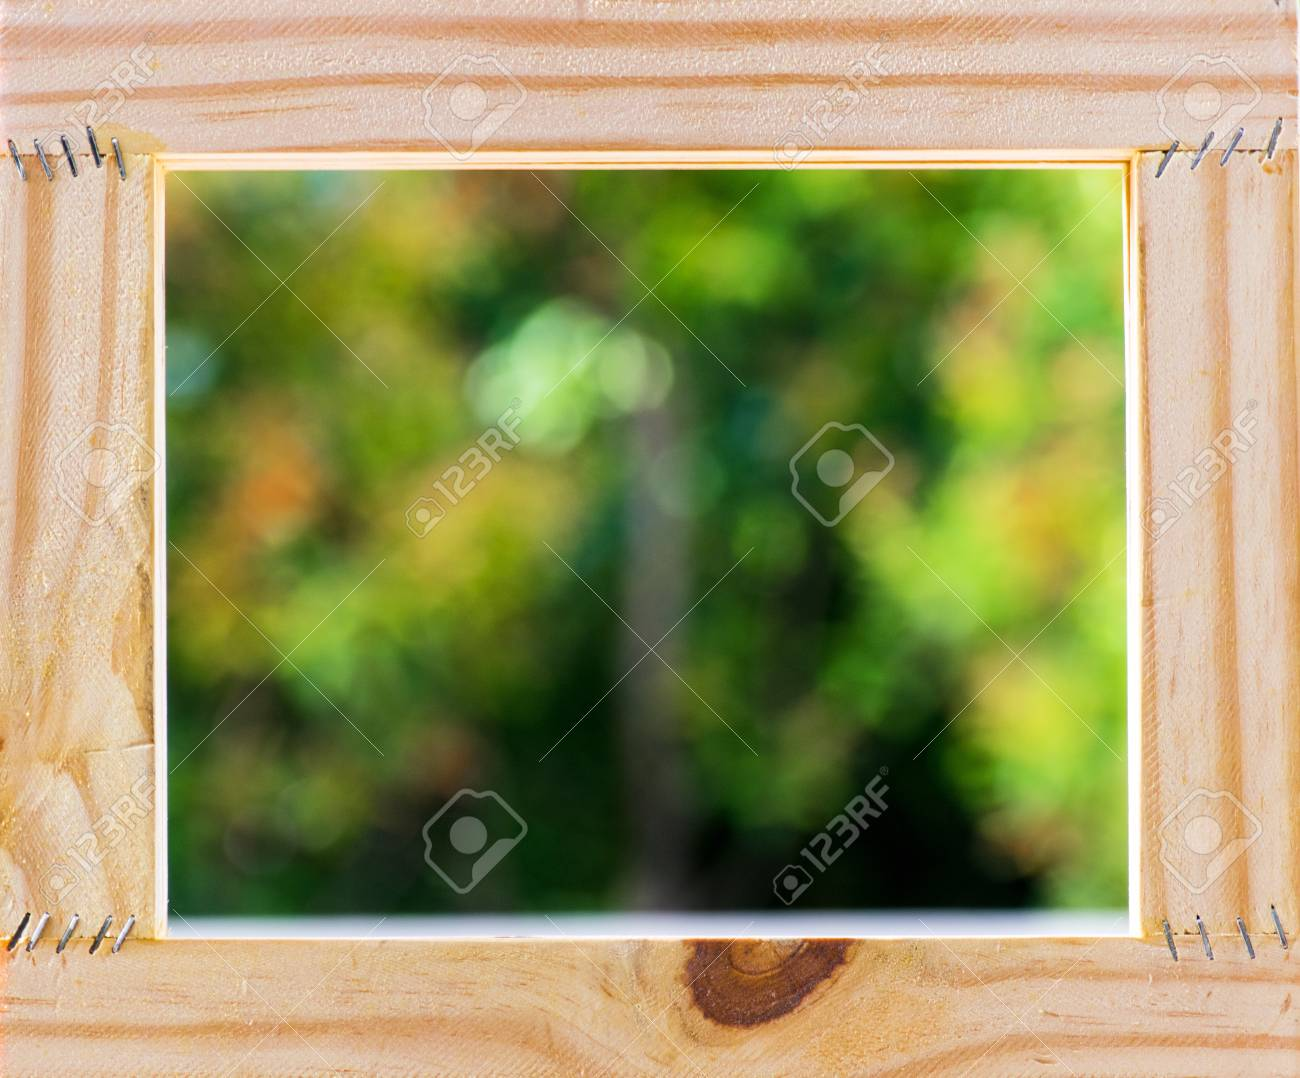 Picture Frame On Blurred Tree Backgroud Using Wallpaper Or 1300x1078